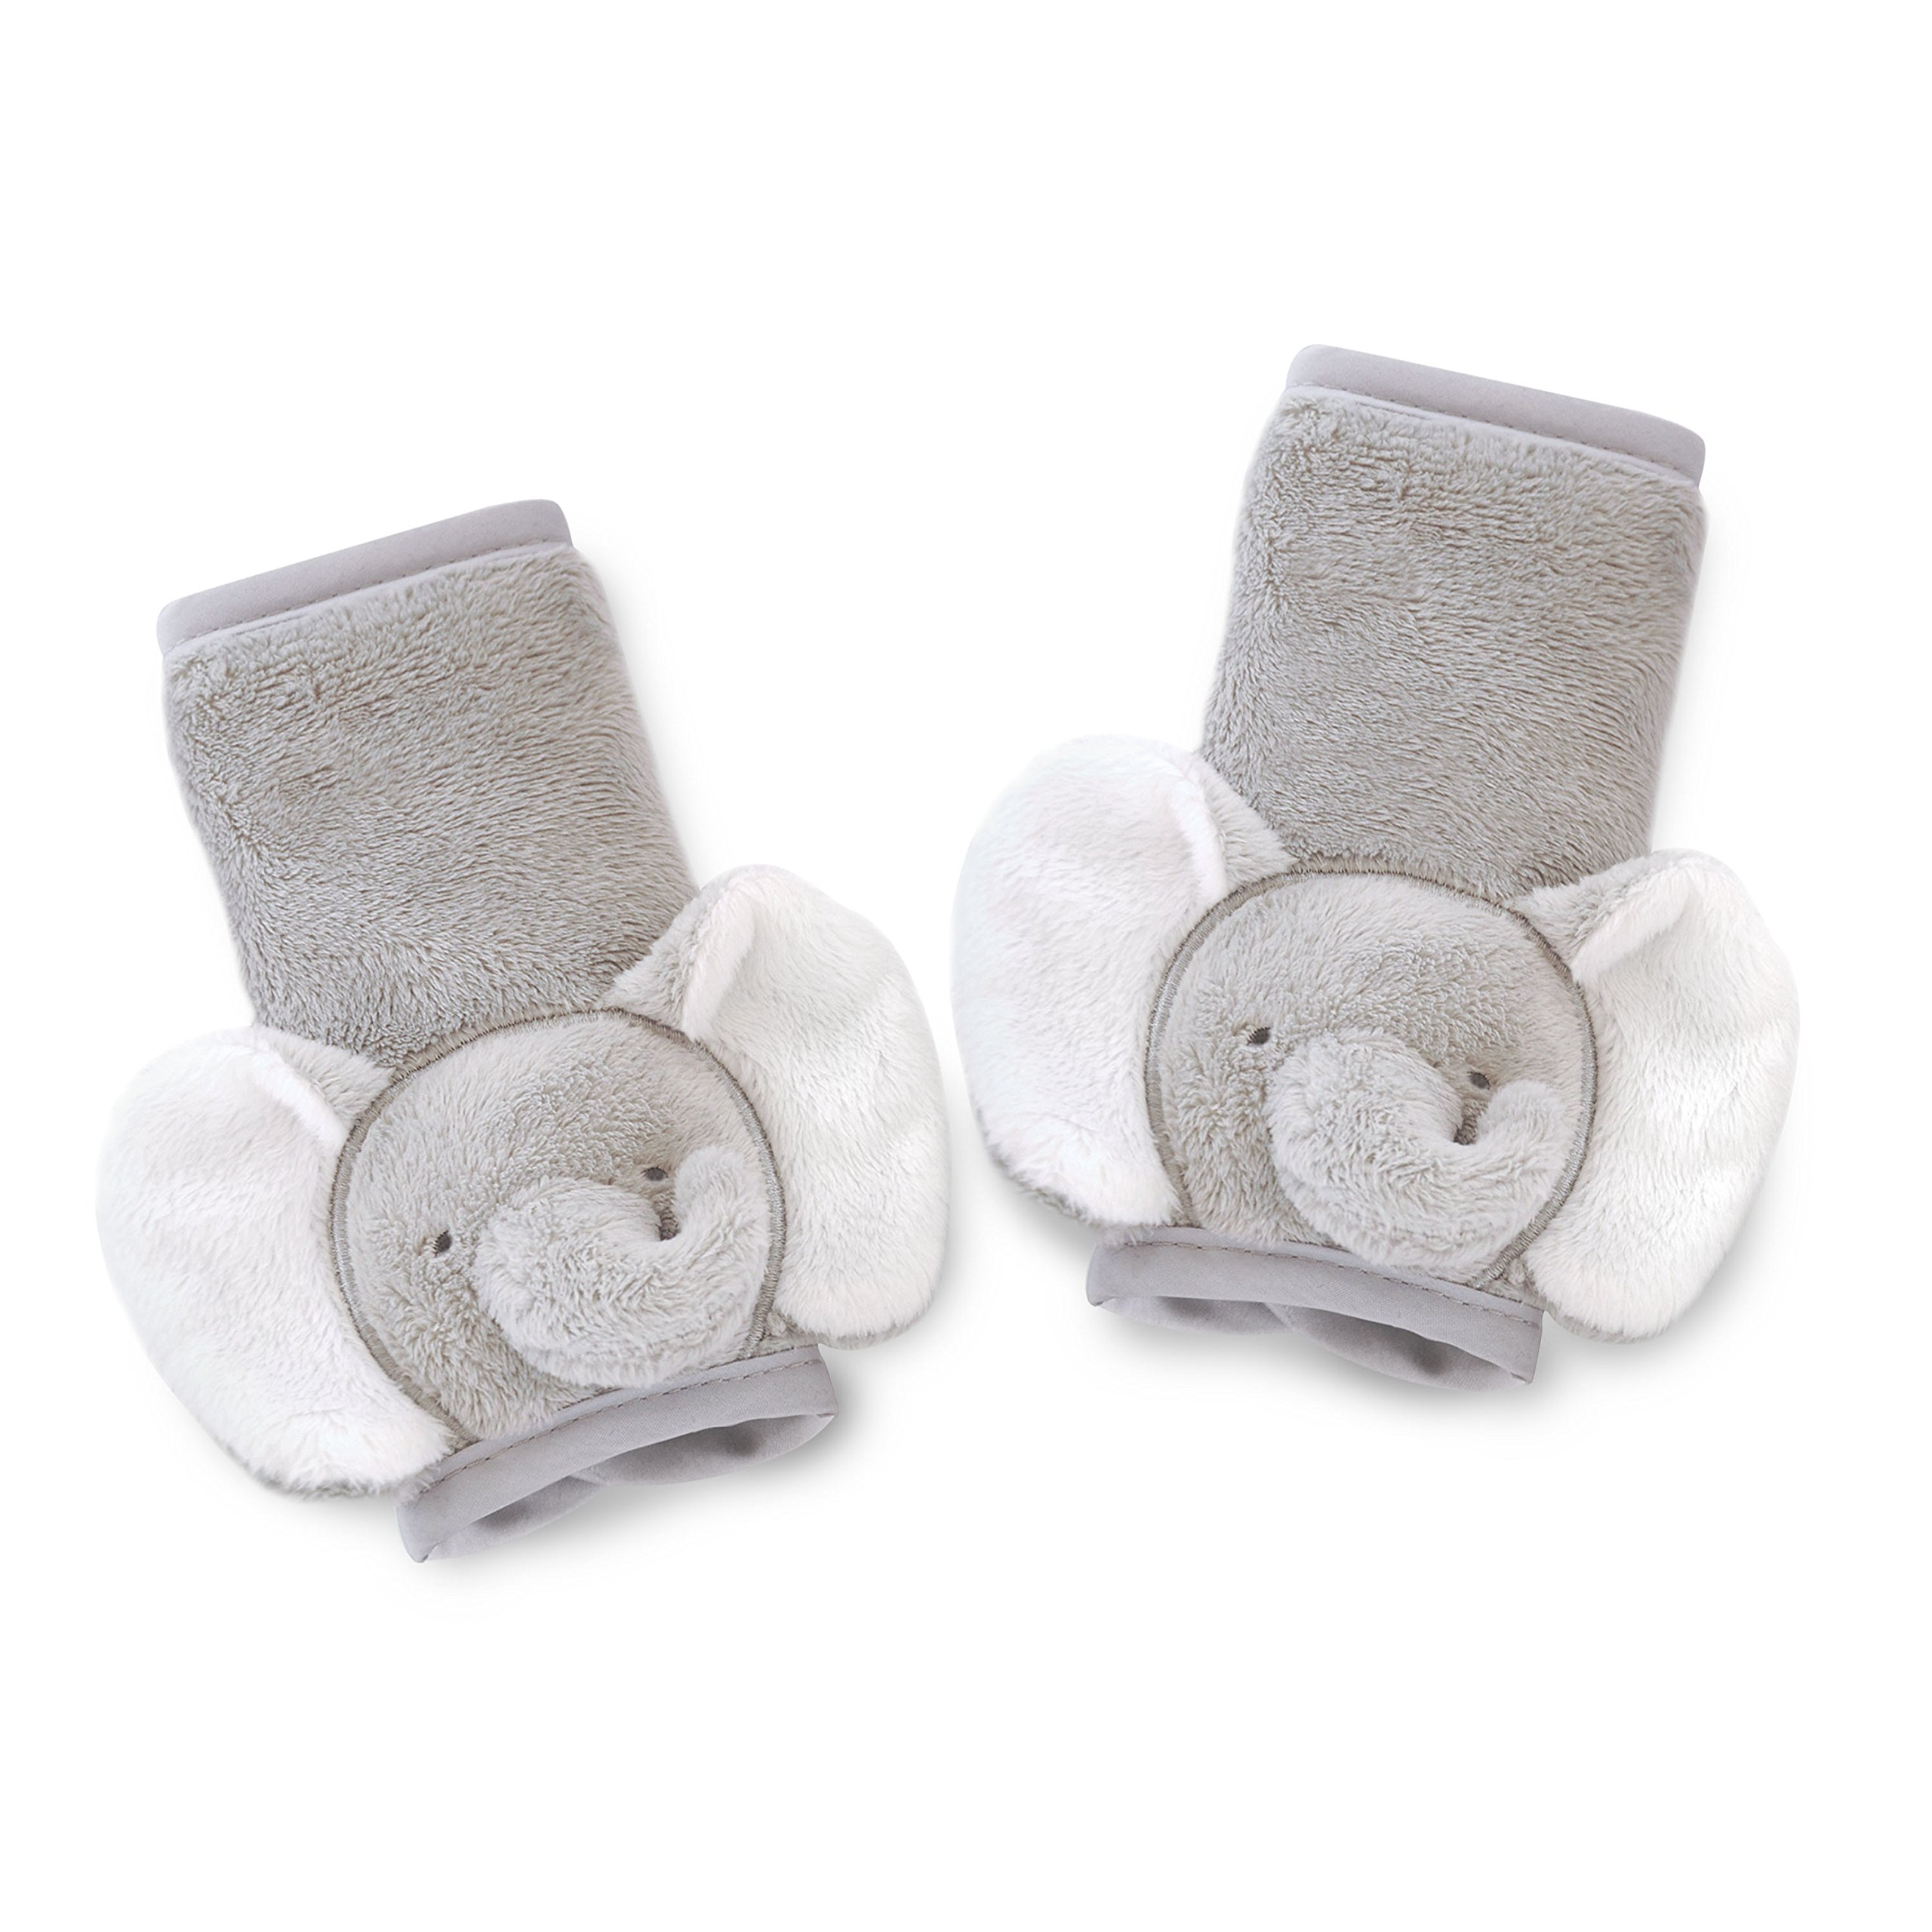 Carter's Plush Strap Covers, Animal Elephant, Grey/White by Carter's